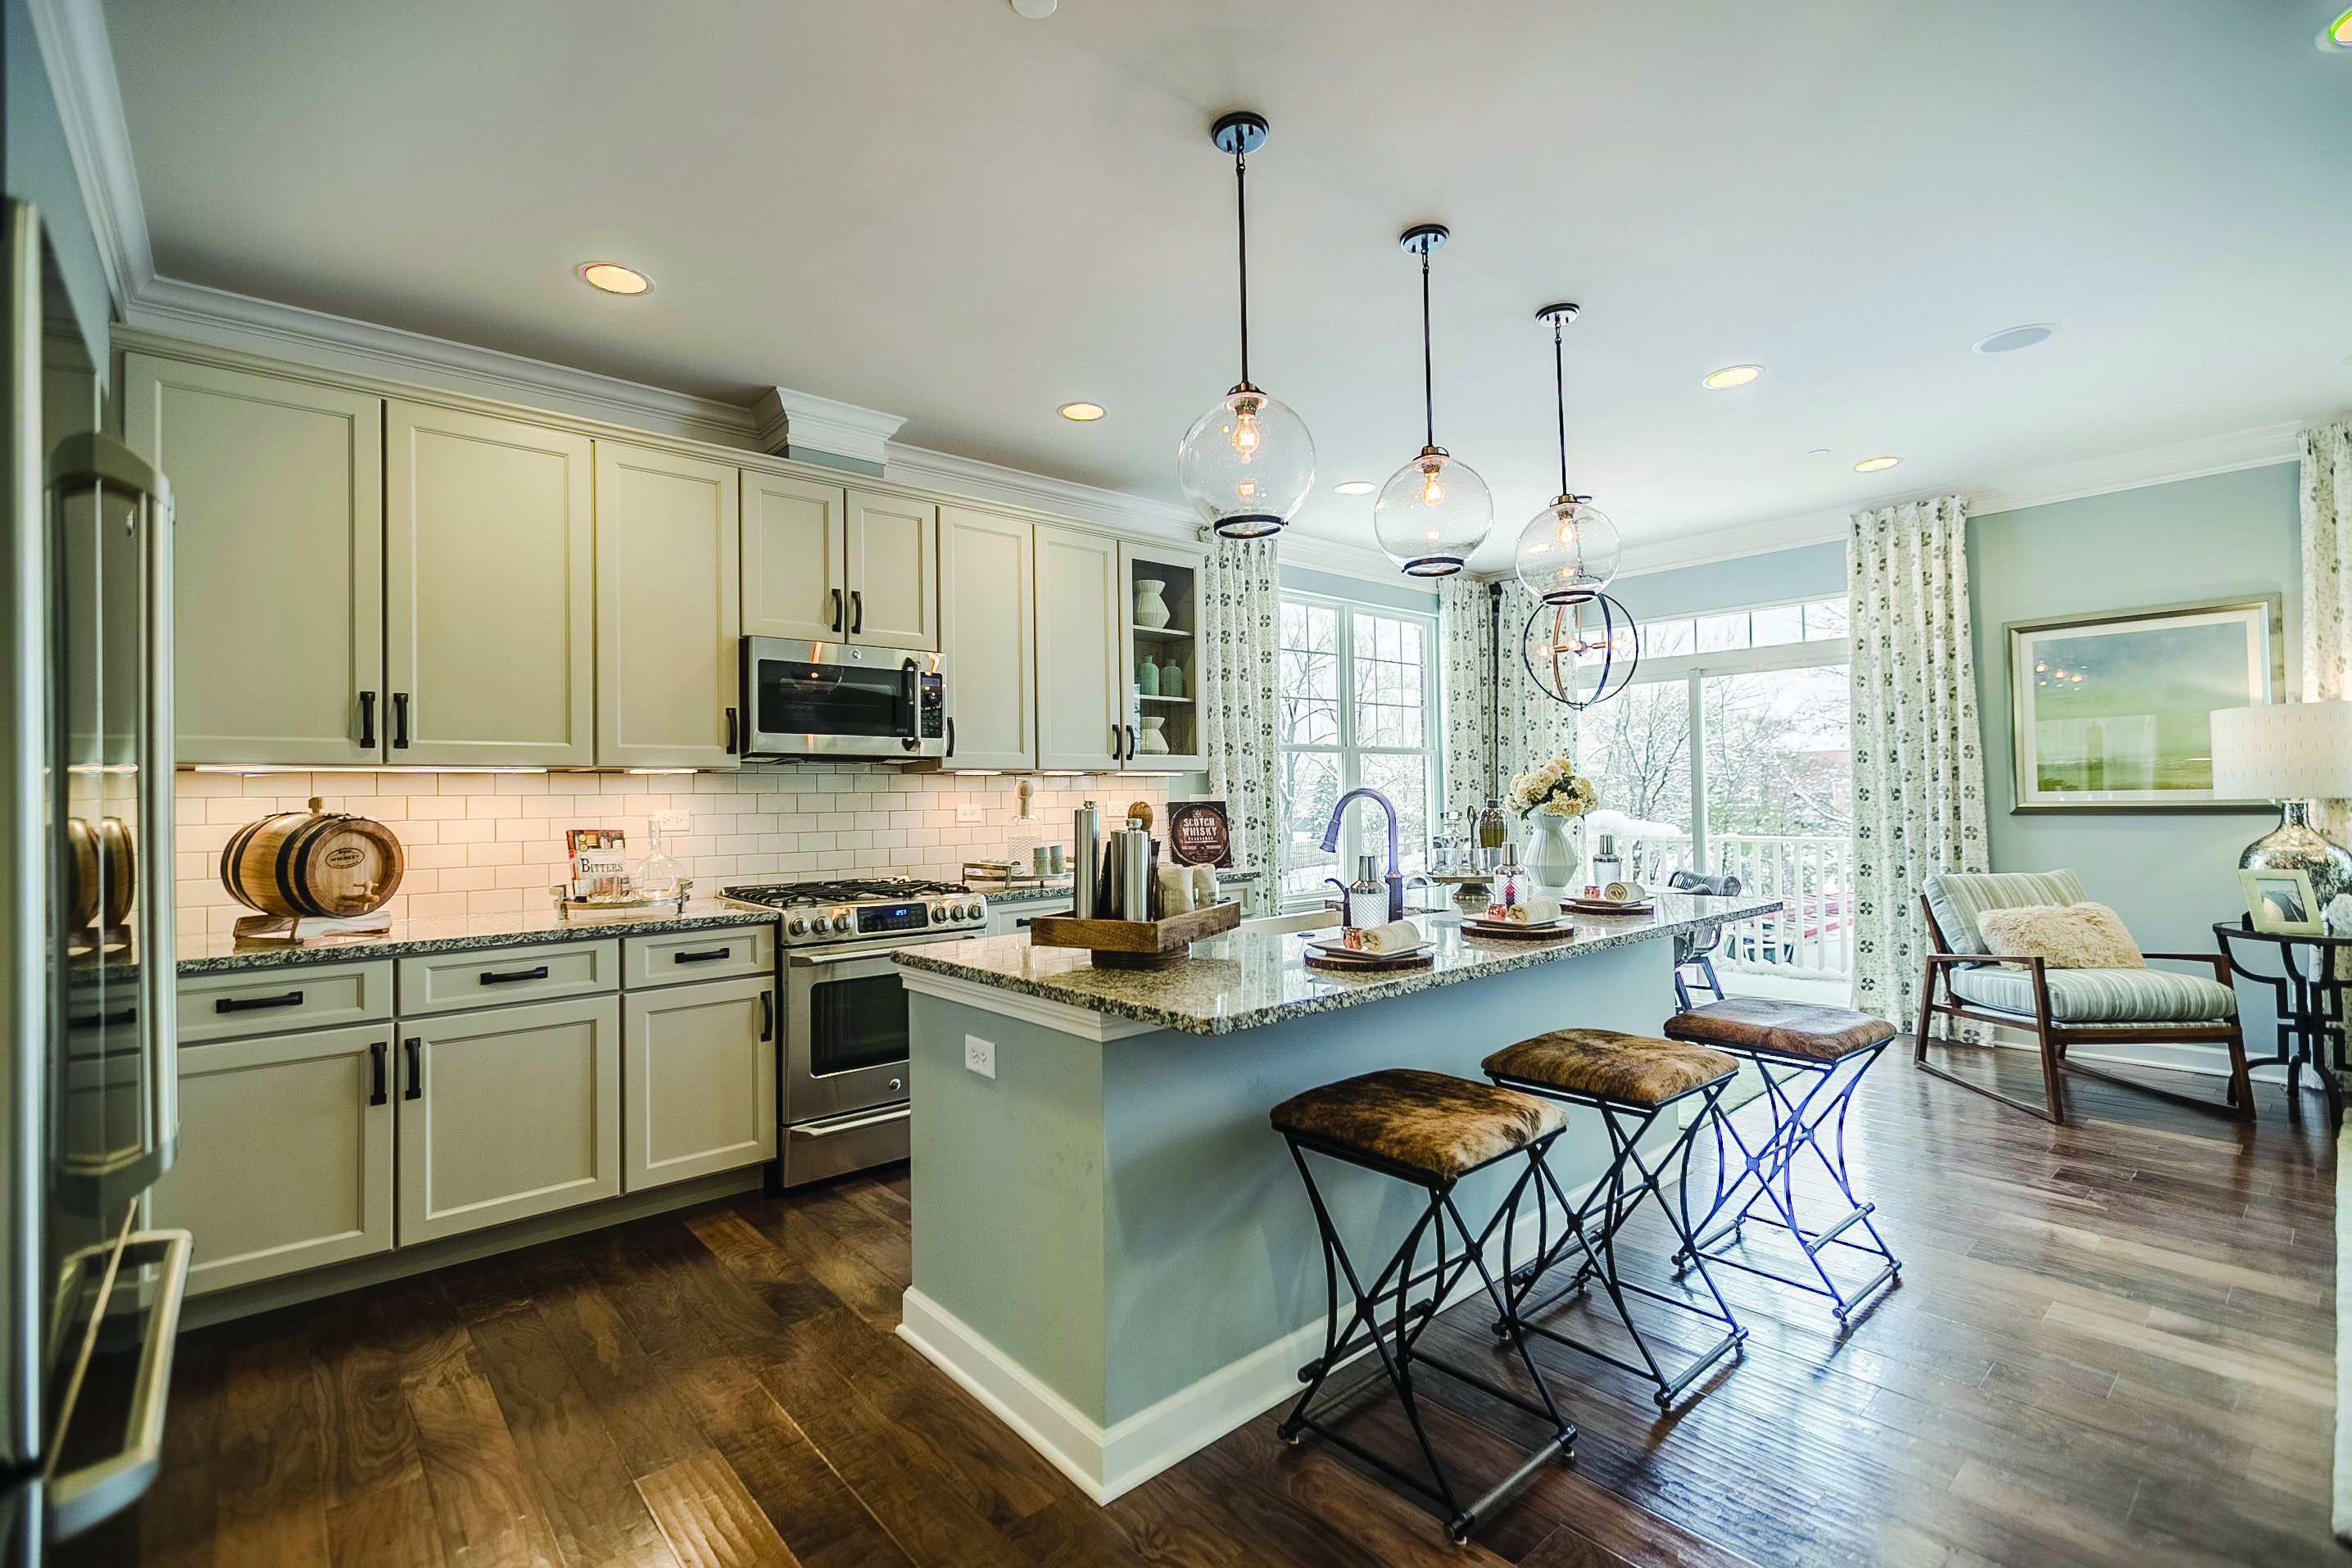 What A Beautiful Bright Kitchen By Echelon Cabinetry Get Inspiration From Prosource Kitchend Kitchen Remodel Kitchen Renovation Wholesale Kitchen Cabinets